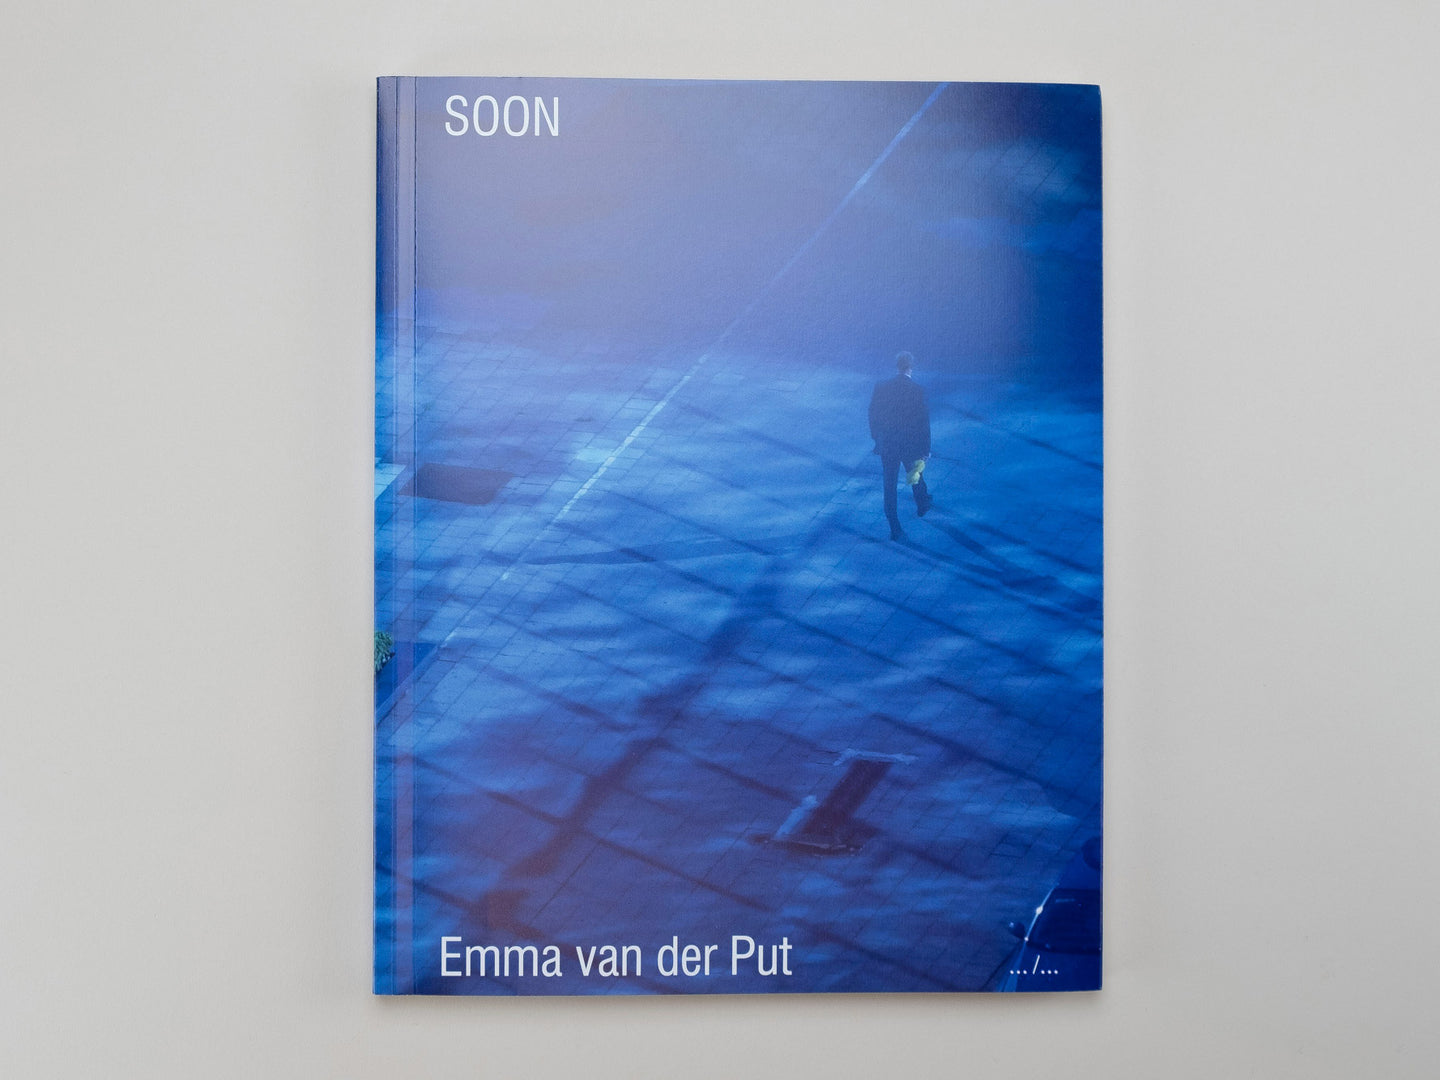 SOON by Emma van der Put